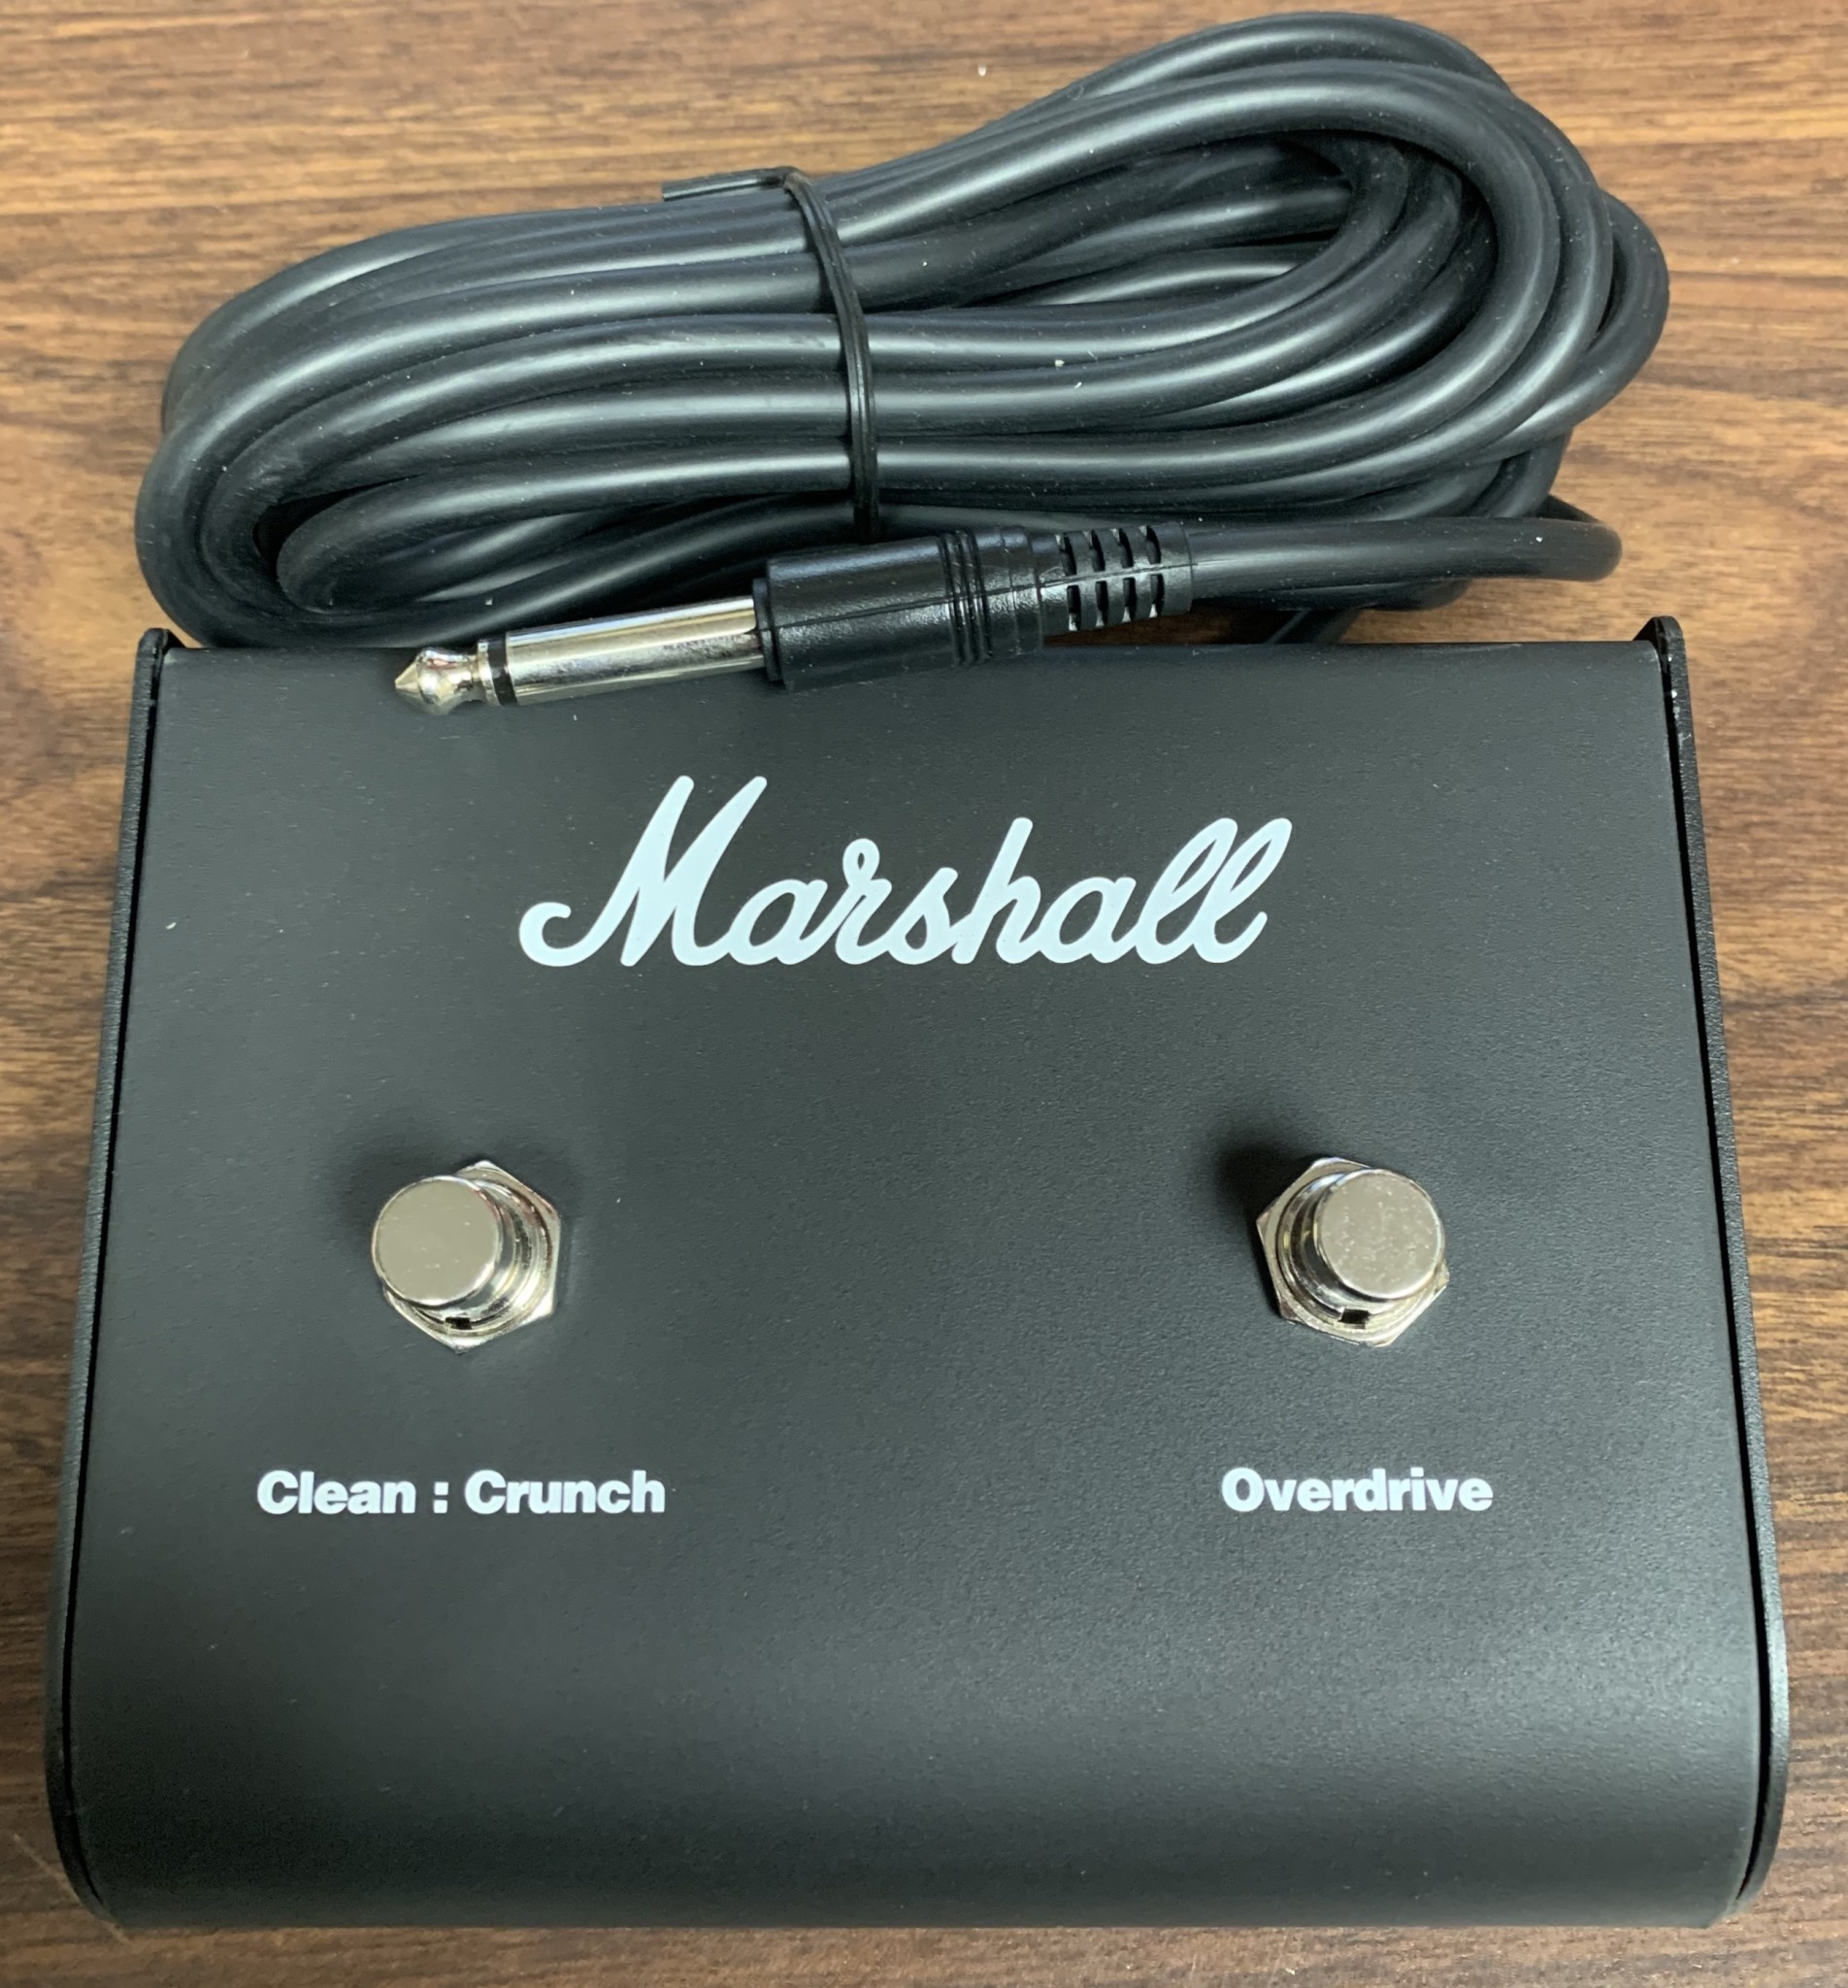 Marshall Marshall PEDL-90010 2-Button Foot Switch, Clean:Crunch/Overdrive